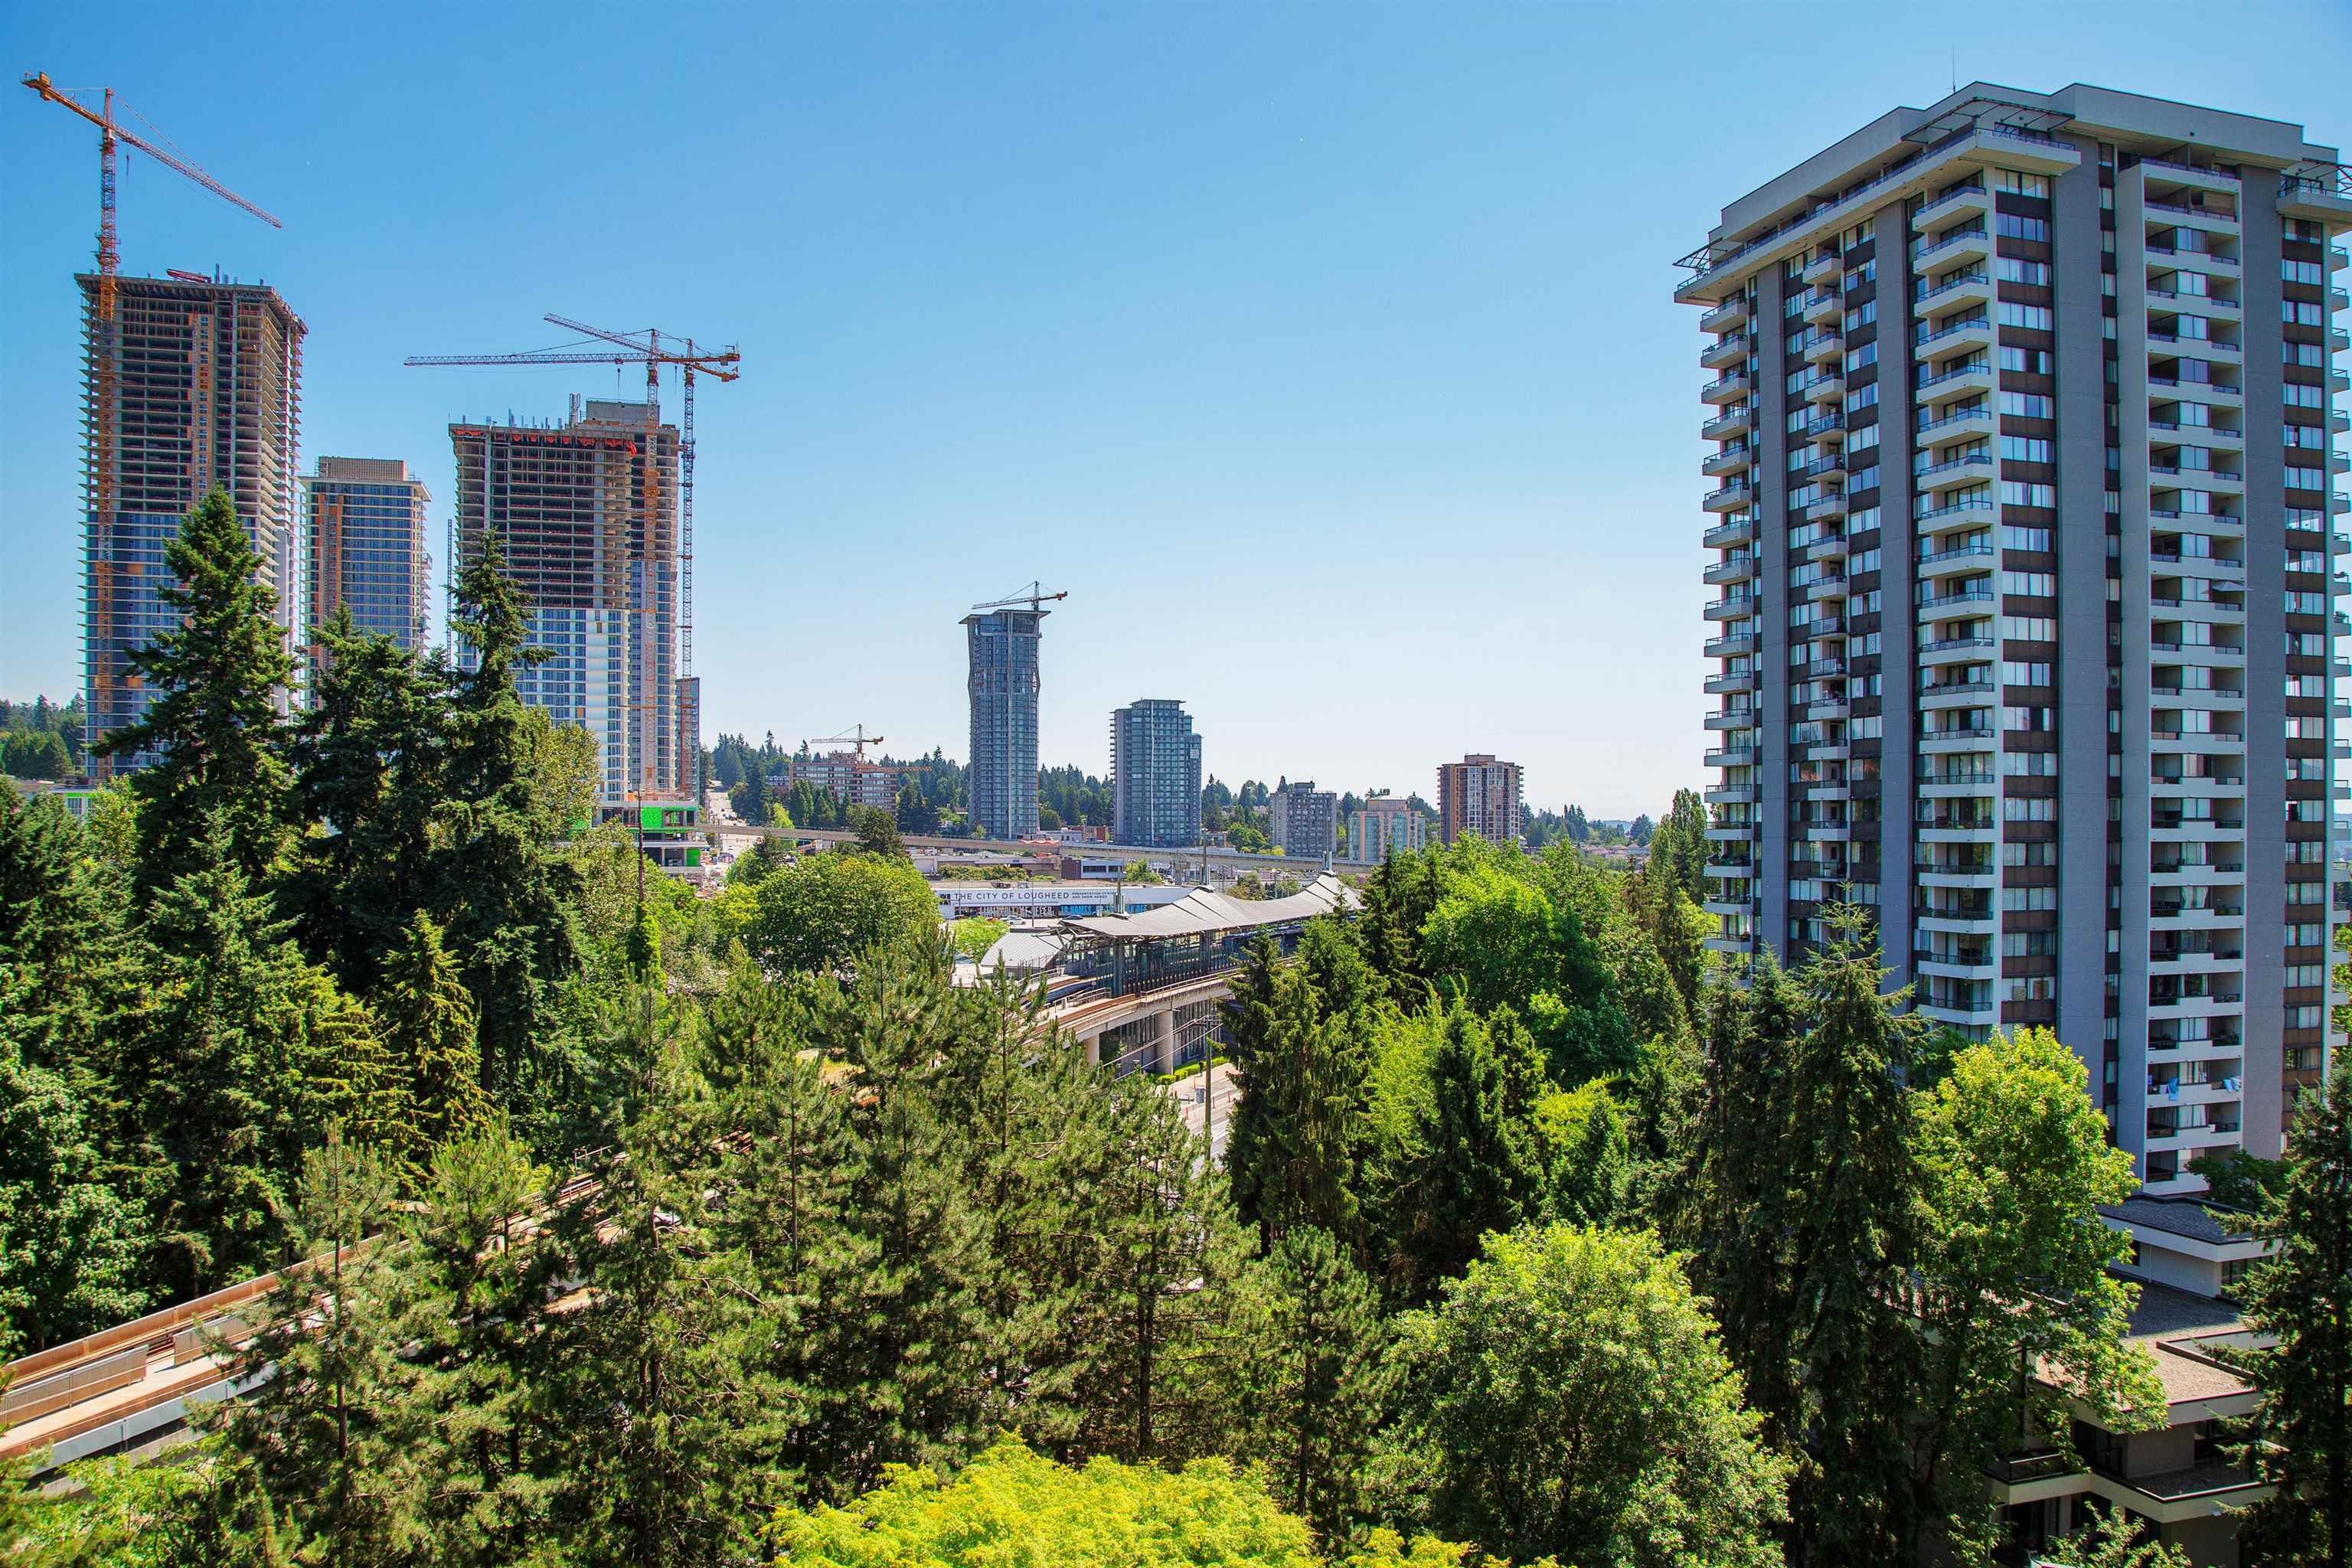 """Main Photo: 808 3970 CARRIGAN Court in Burnaby: Government Road Condo for sale in """"THE HARRINGTON"""" (Burnaby North)  : MLS®# R2616331"""